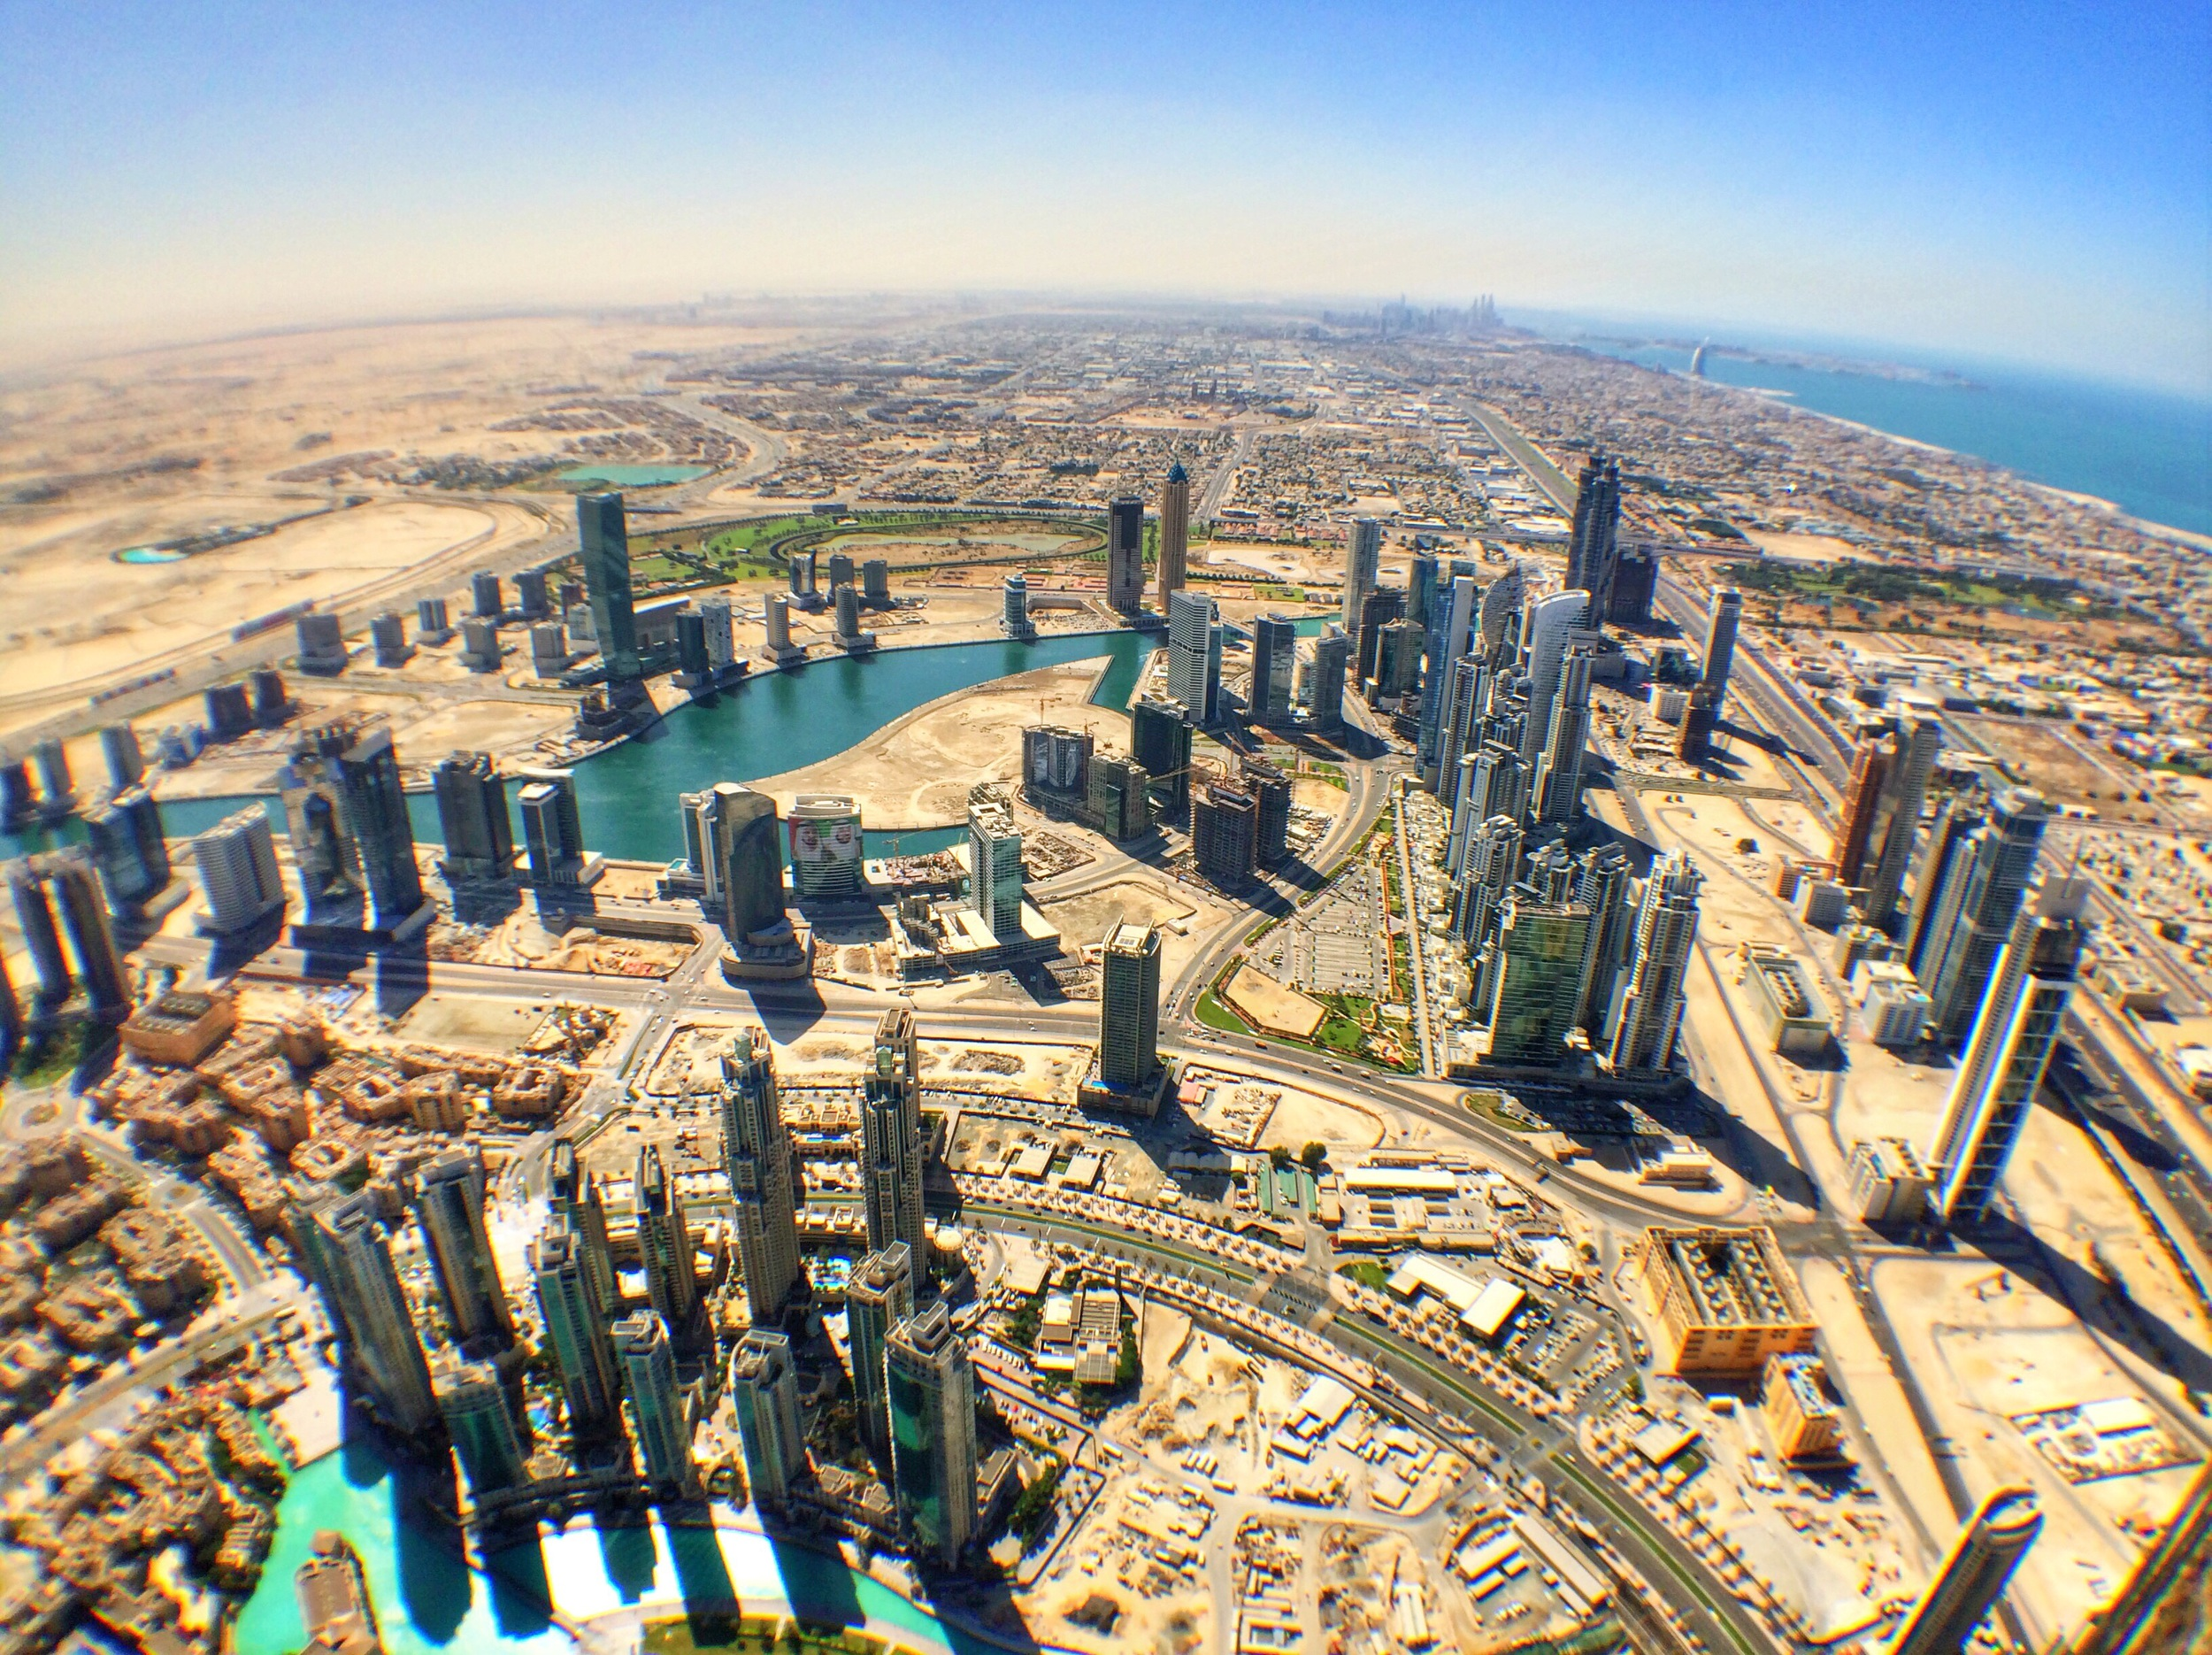 View of Dubai to the South from Burj Khalifa